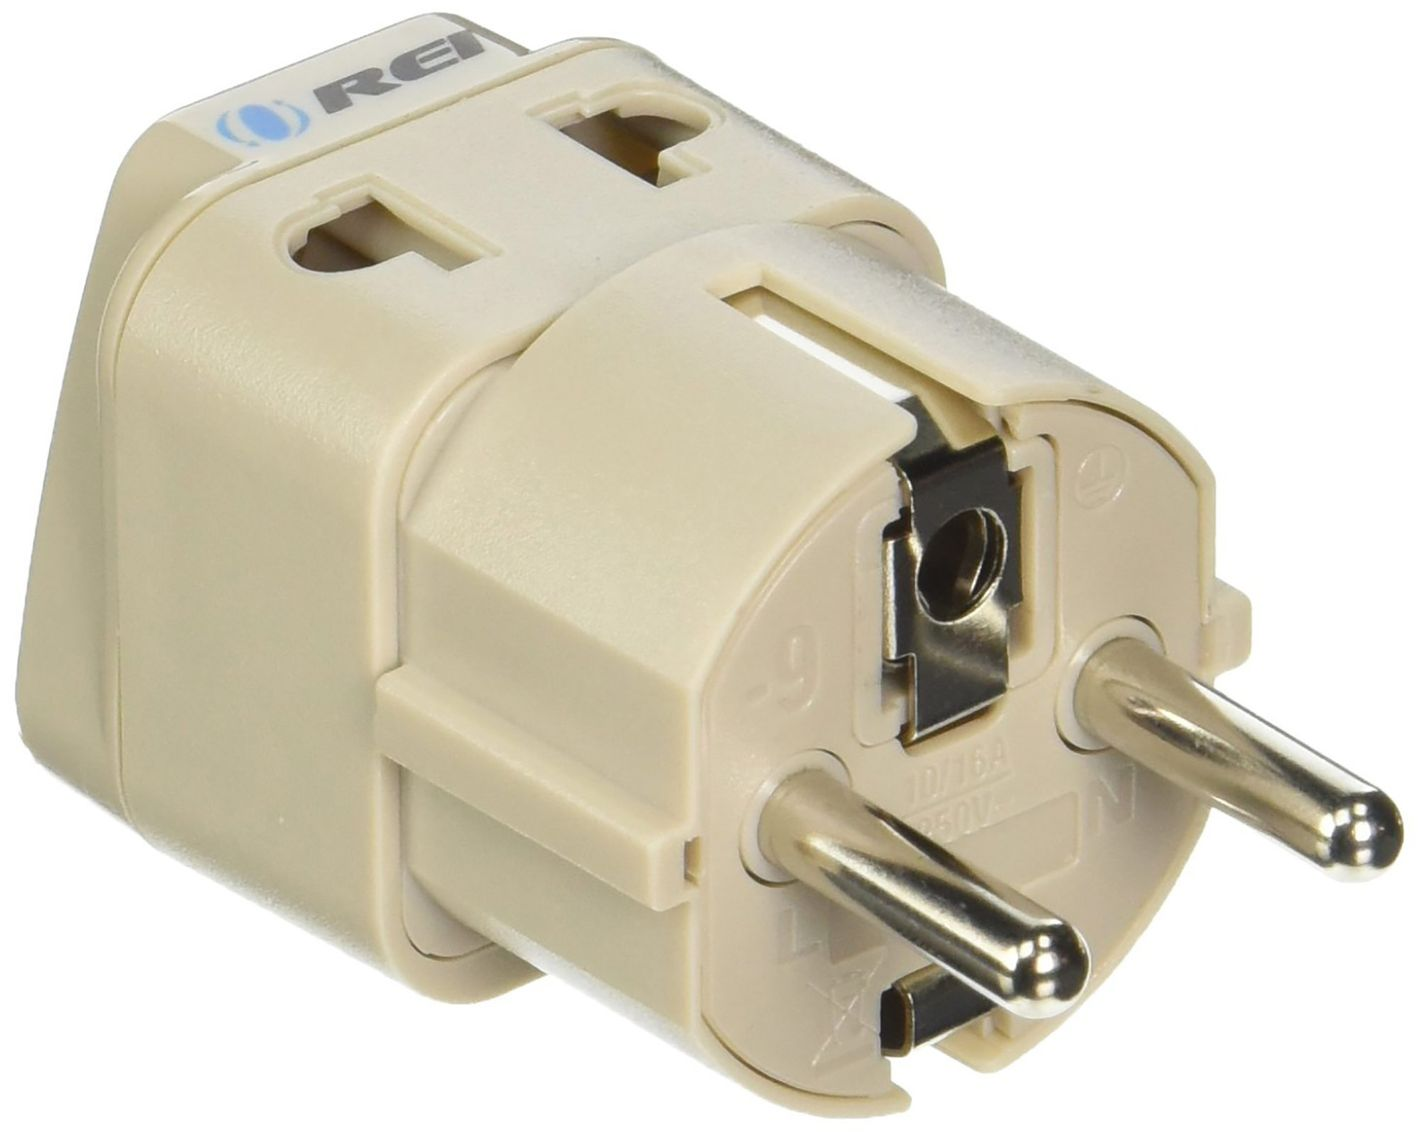 Orei European Plug Adapter